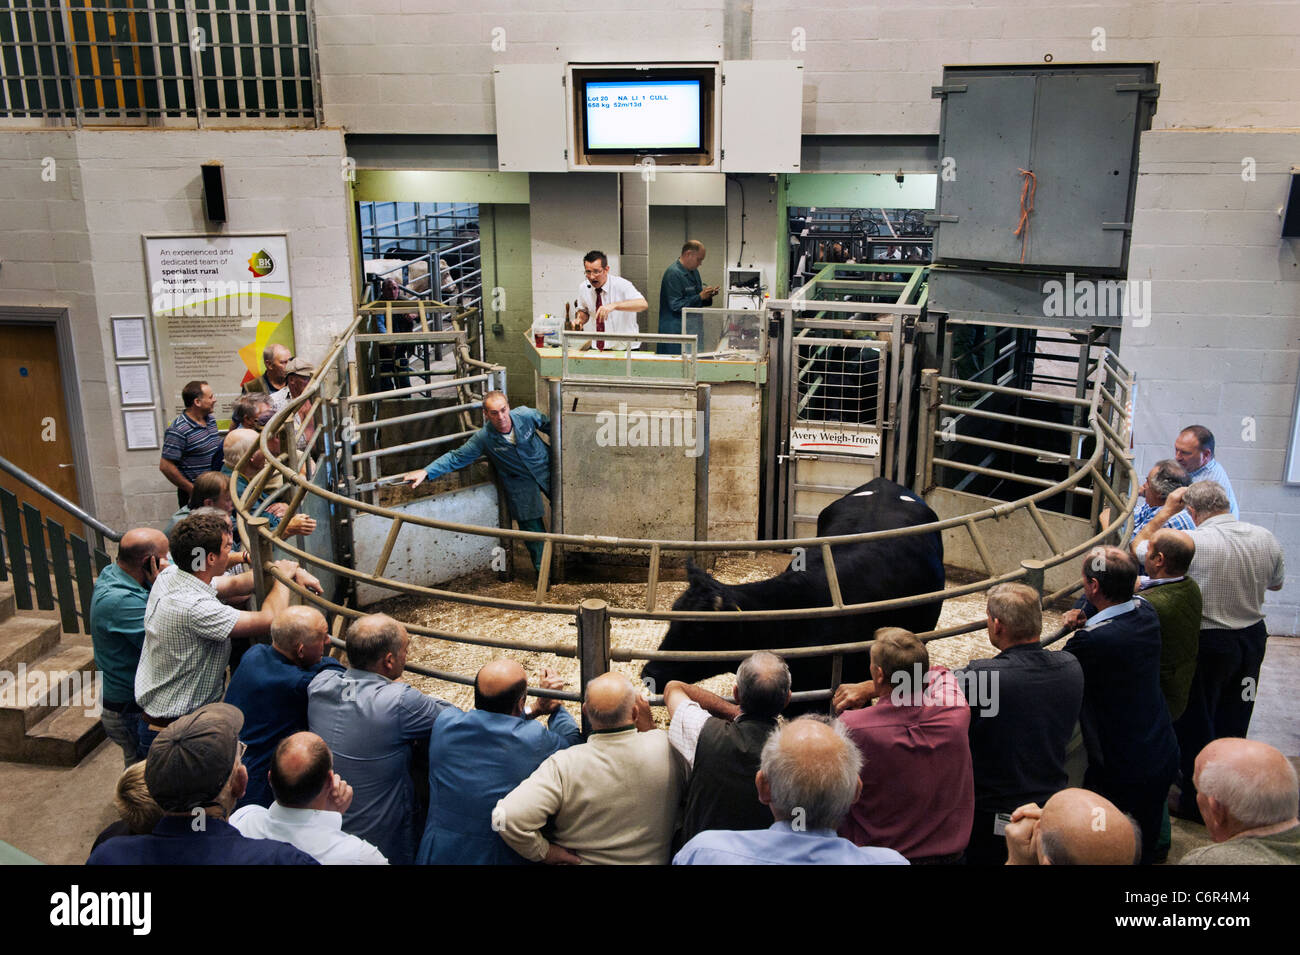 Cattle auction ring at Bakewell livestock market, Derbyshire - Stock Image